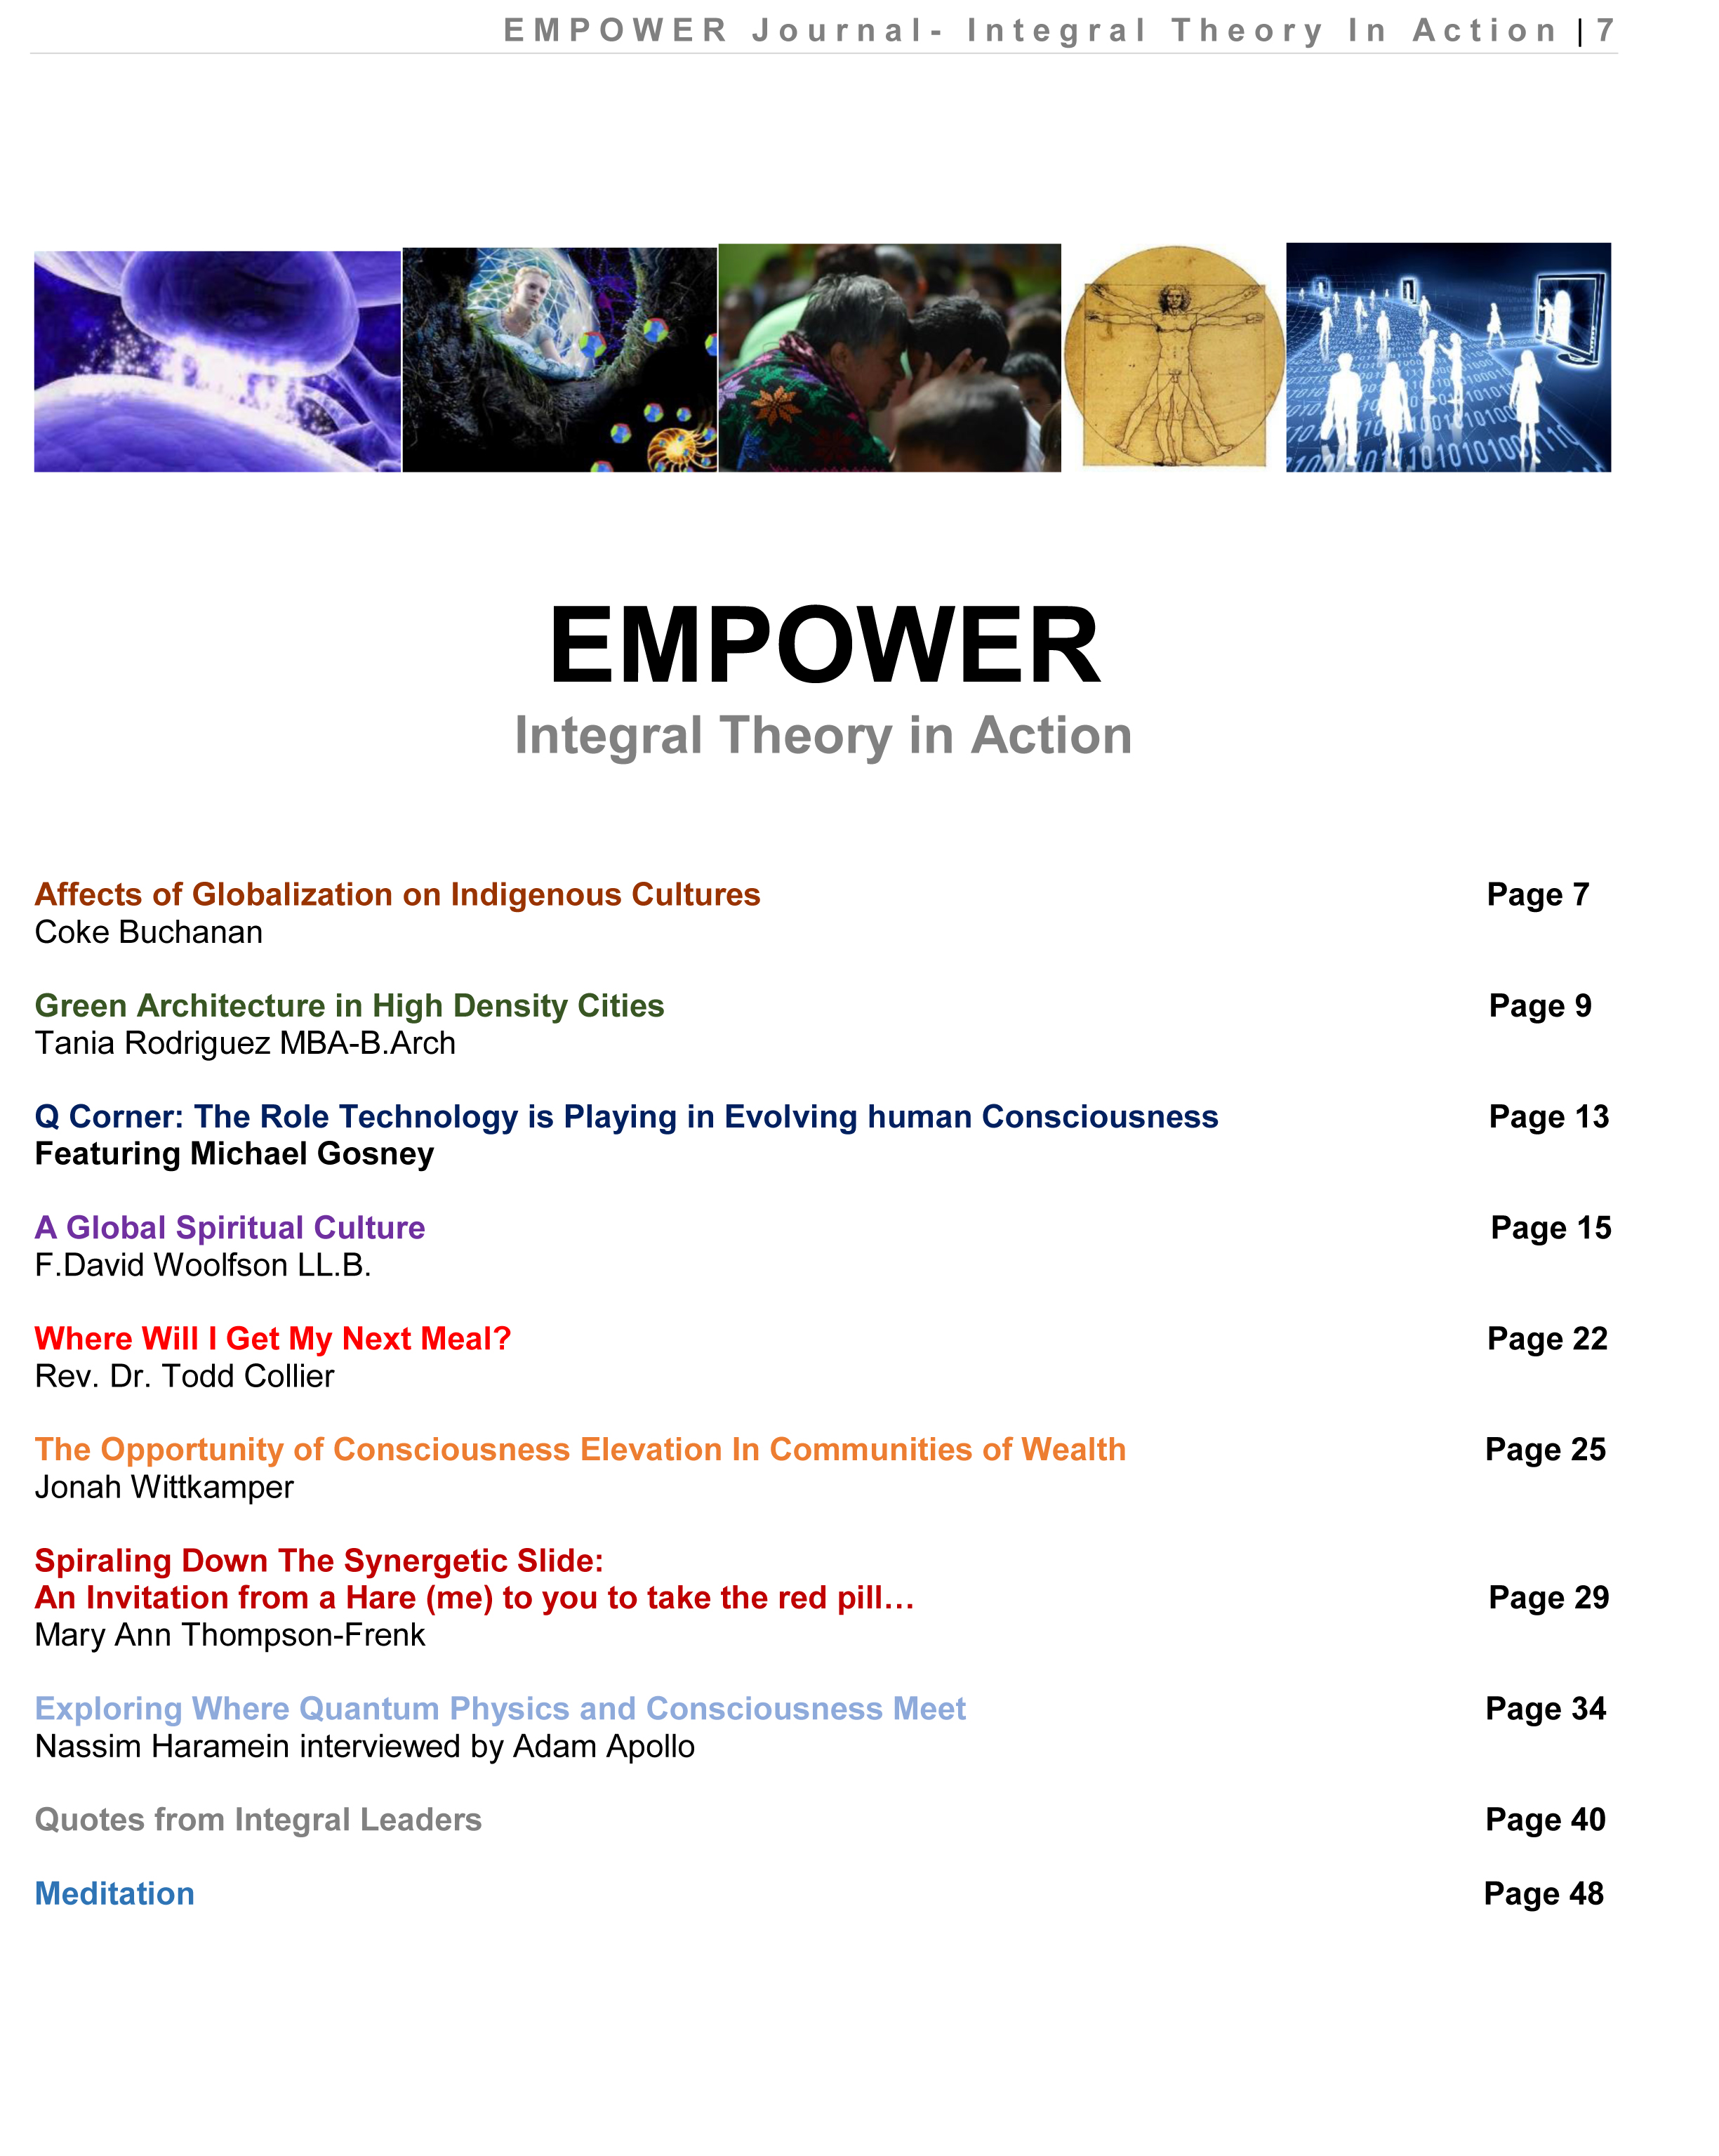 "Writers featured in ""Empower"" Journal include: Coke Buchanan, Tania Rodriguez MBA-B.Arch, Michael Gosney, F. David Woolfson LL.B., Rev. Dr. Todd Collier, Jonah Wittkamper, Mary Ann Thompson-Frenk, Nassim Haramein - interviewed by Adam Apollo"